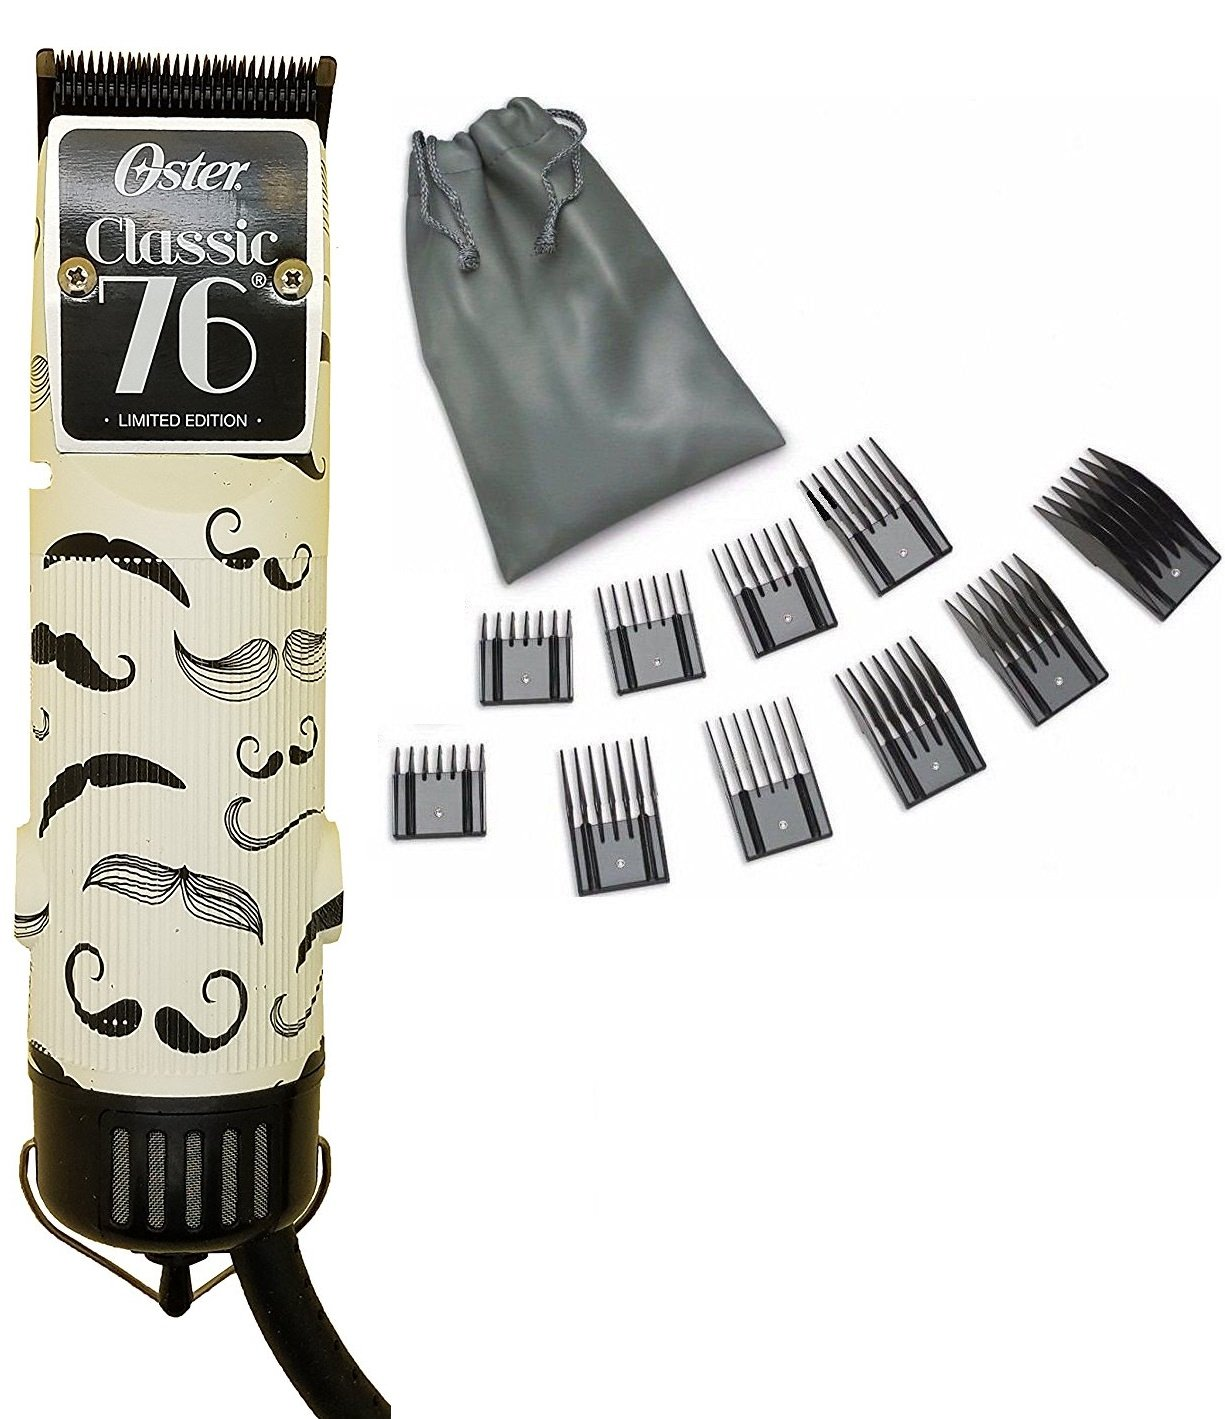 Oster 76 Mustache Professional Hair Clipper Limited Edition 10 PC Comb Set